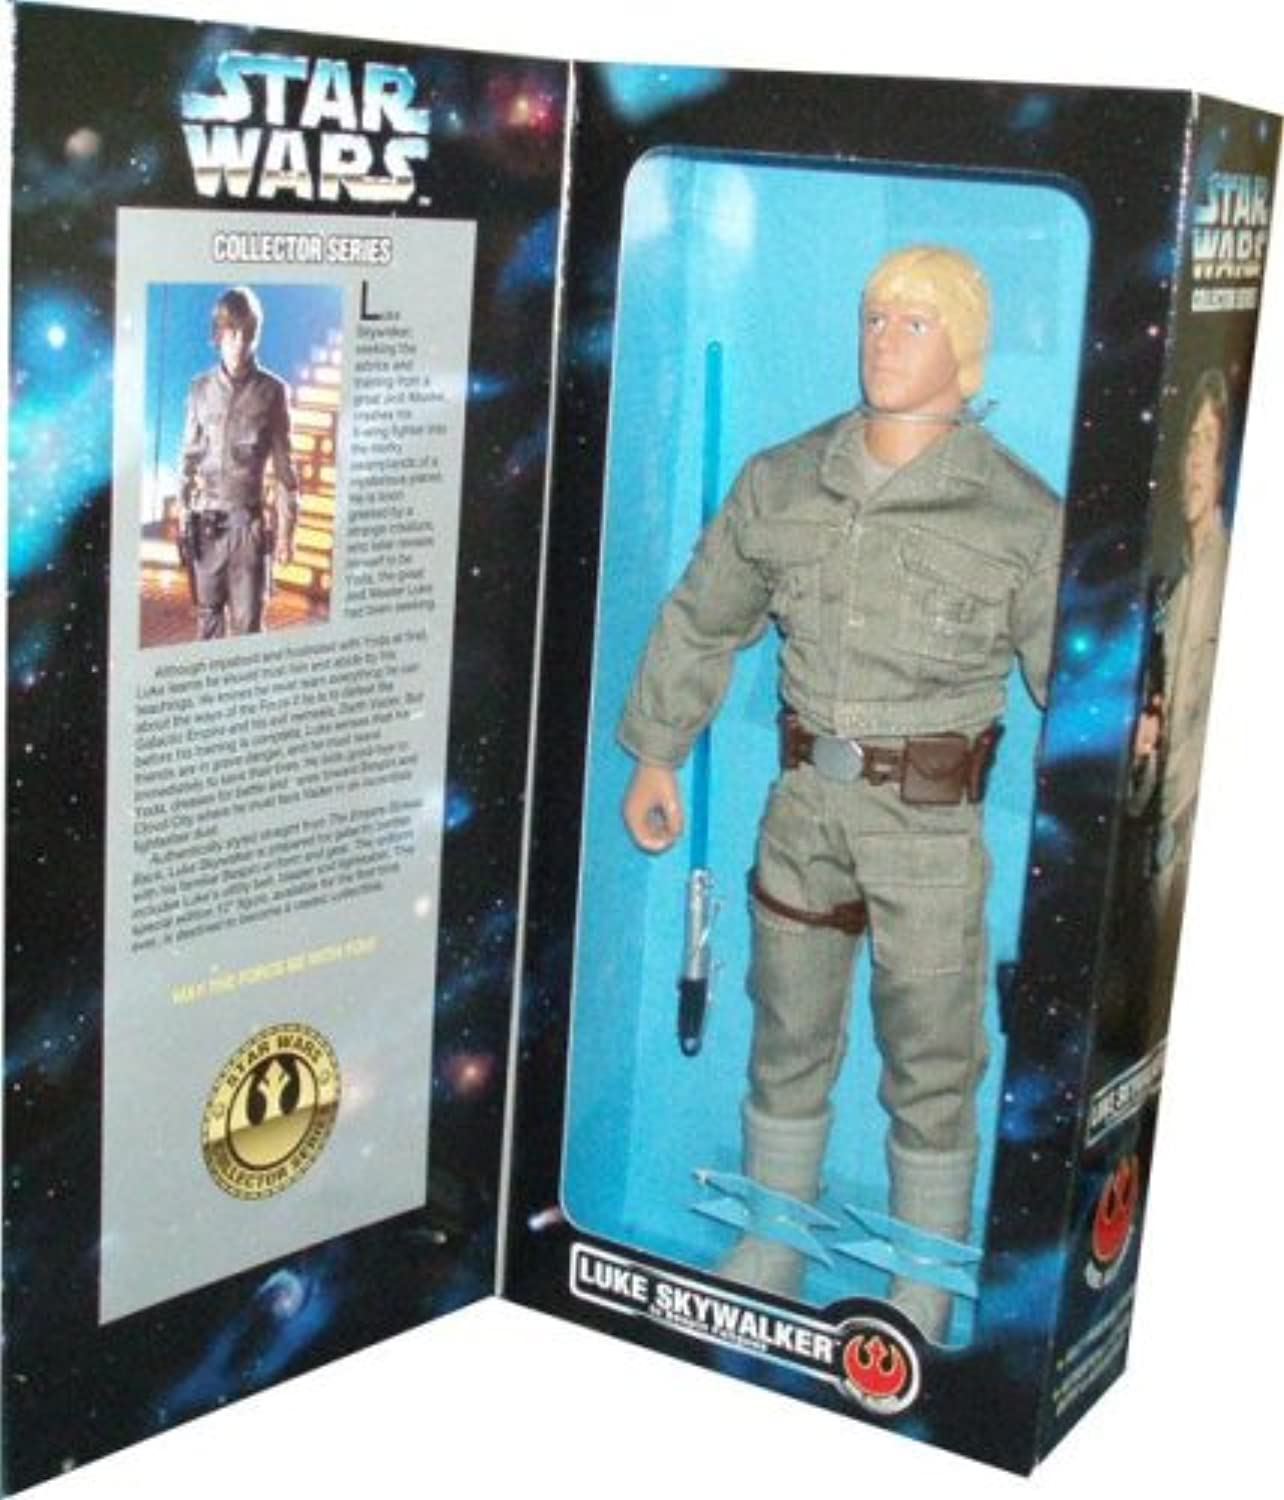 Kenner Year 1996 Star Wars Collector Series 12 Inch Tall Fully Poseable Figure with Authentically Styled Outfit and Accessories  Luke Skywalker in Bespin Fatigues with Blaster Pistol and Lightsaber